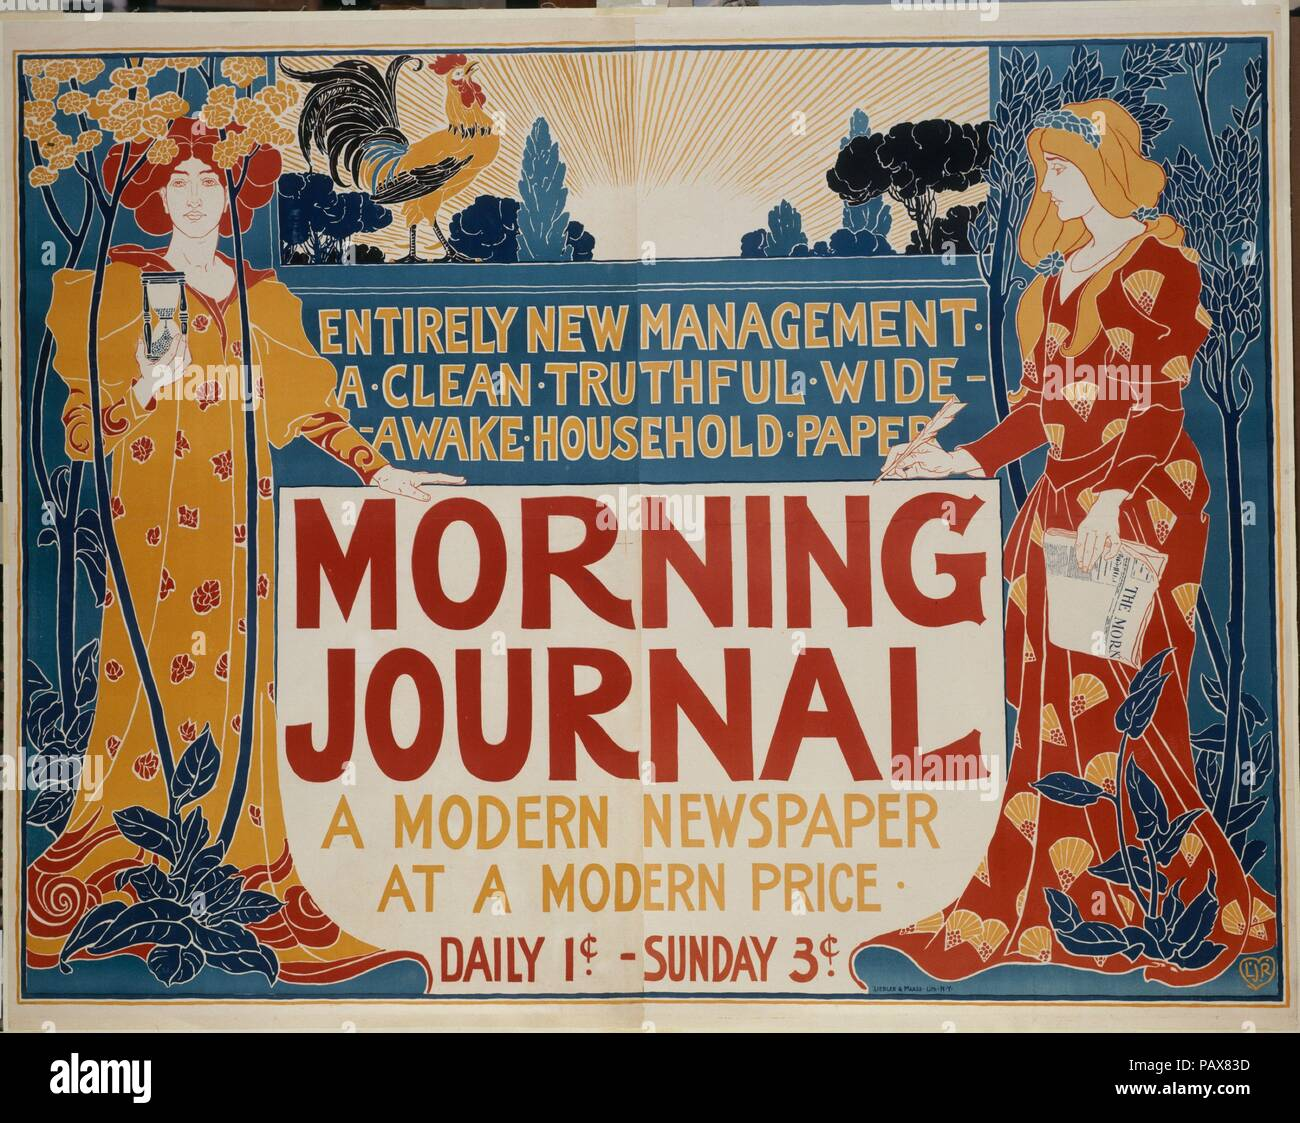 Morning Journal. Artist: Louis John Rhead (American (born England), Etruria 1857-1926 Amityville, New York). Dimensions: Sheet: 46 9/16 × 58 11/16 in. (118.3 × 149.1 cm)  Image: 44 5/16 in. × 58 in. (112.6 × 147.3 cm). Printer: Liebler & Maass Lith., New York. Publisher: The New York Journal. Date: 1895. Museum: Metropolitan Museum of Art, New York, USA. - Stock Image